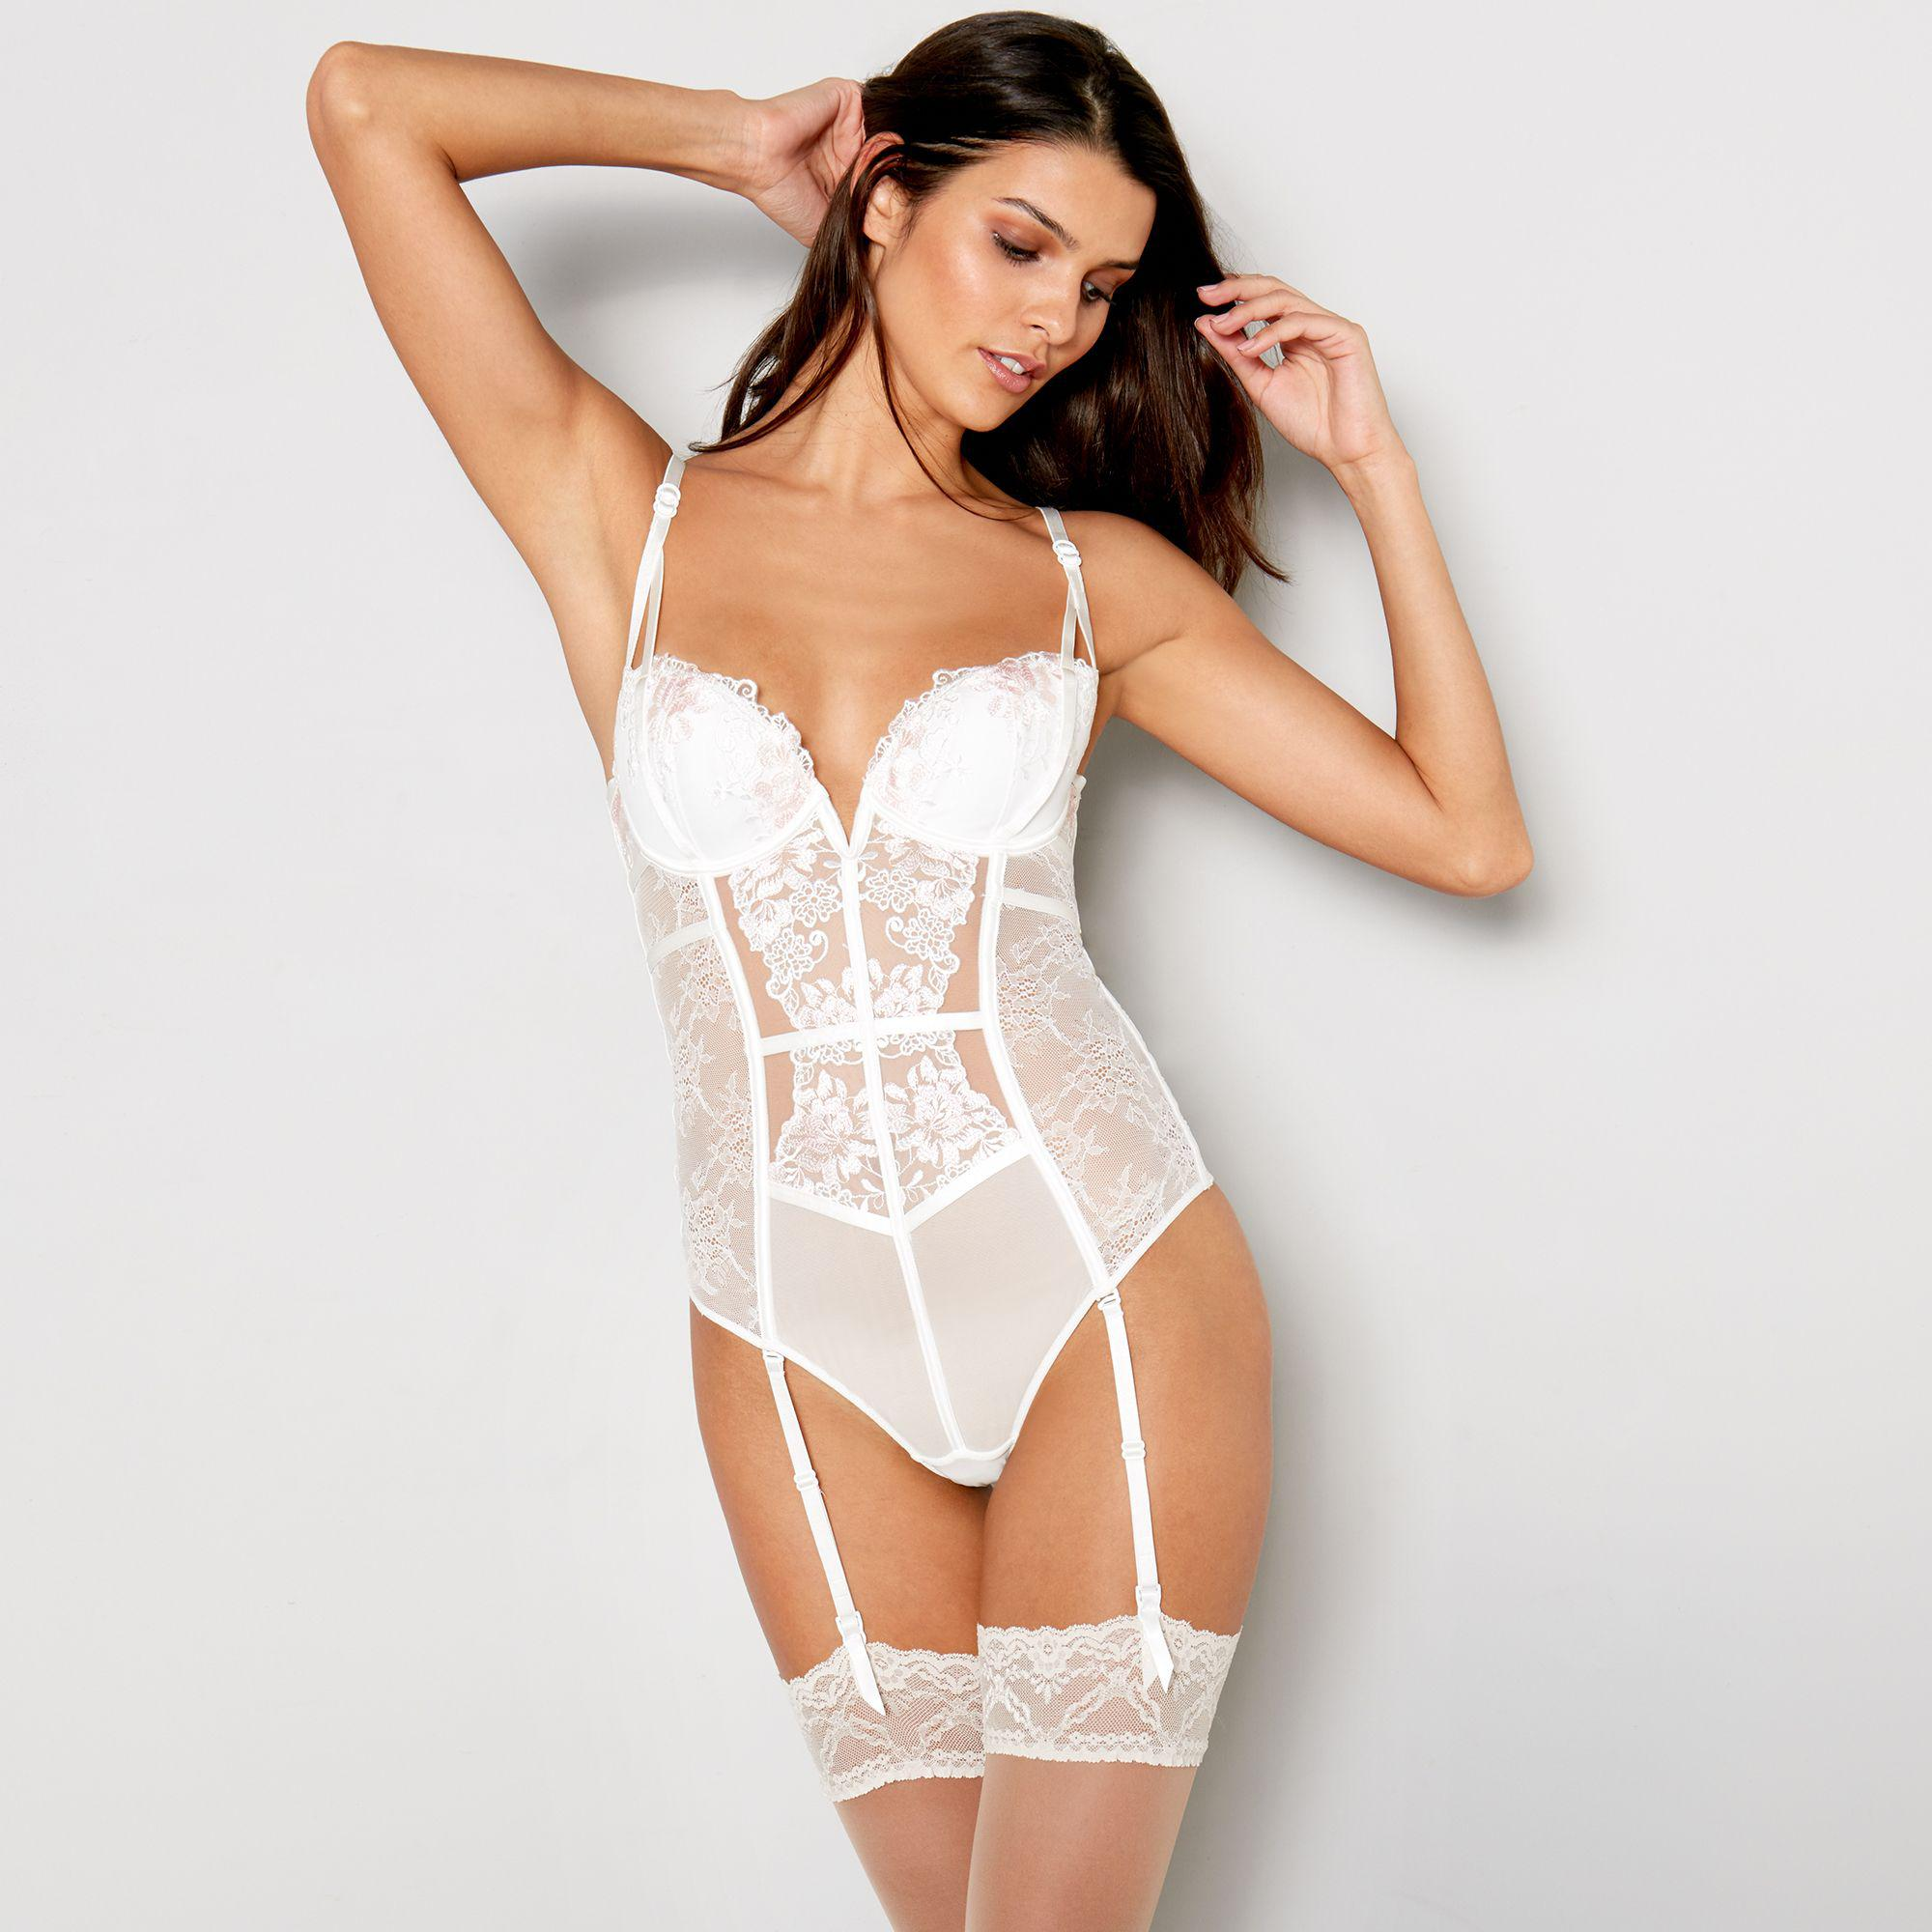 7cc47863af3bc Ann Summers Ivory Embroidered  paige  Body in White - Lyst